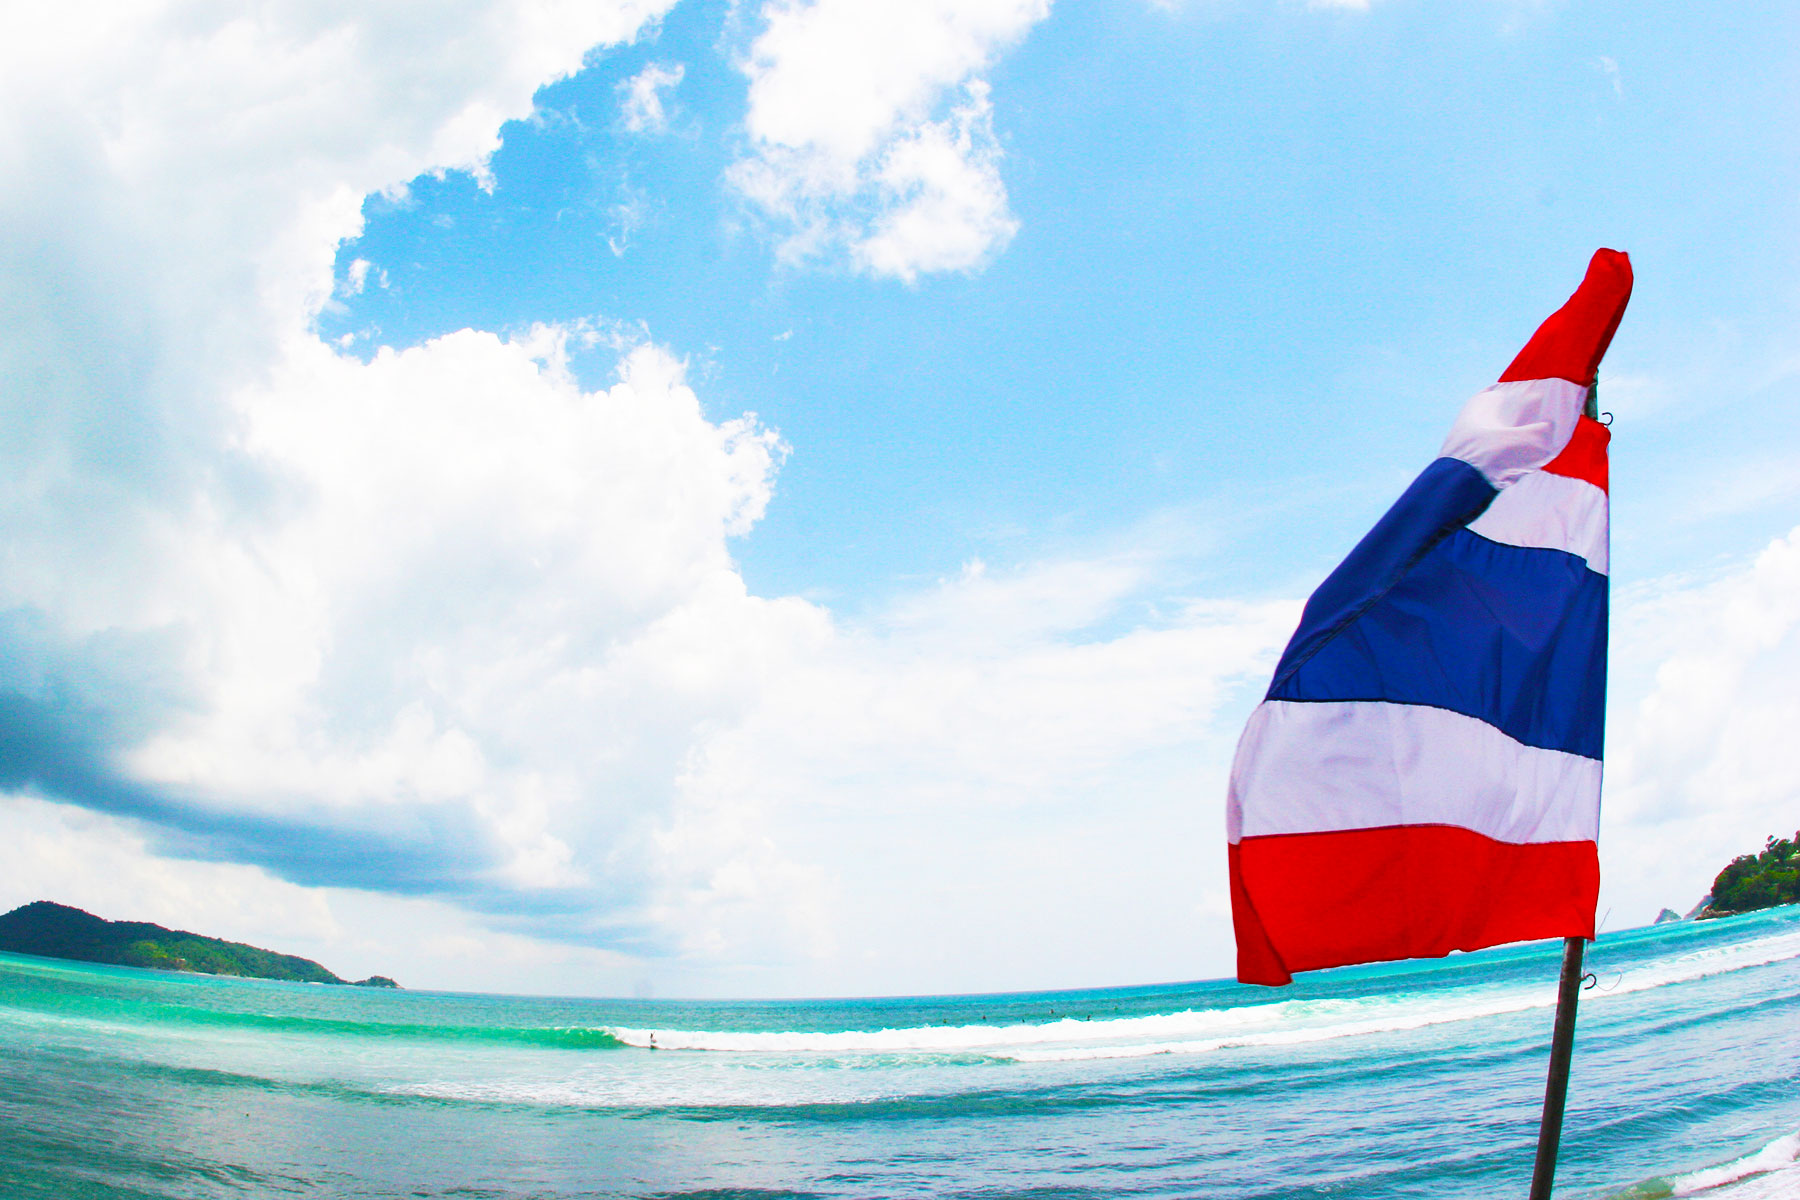 Surfing Thailand | Surf Science Andaman Sea | Dr. Steven A. Martin | PhD Environmental Management | Surf Resource Sustainability Index